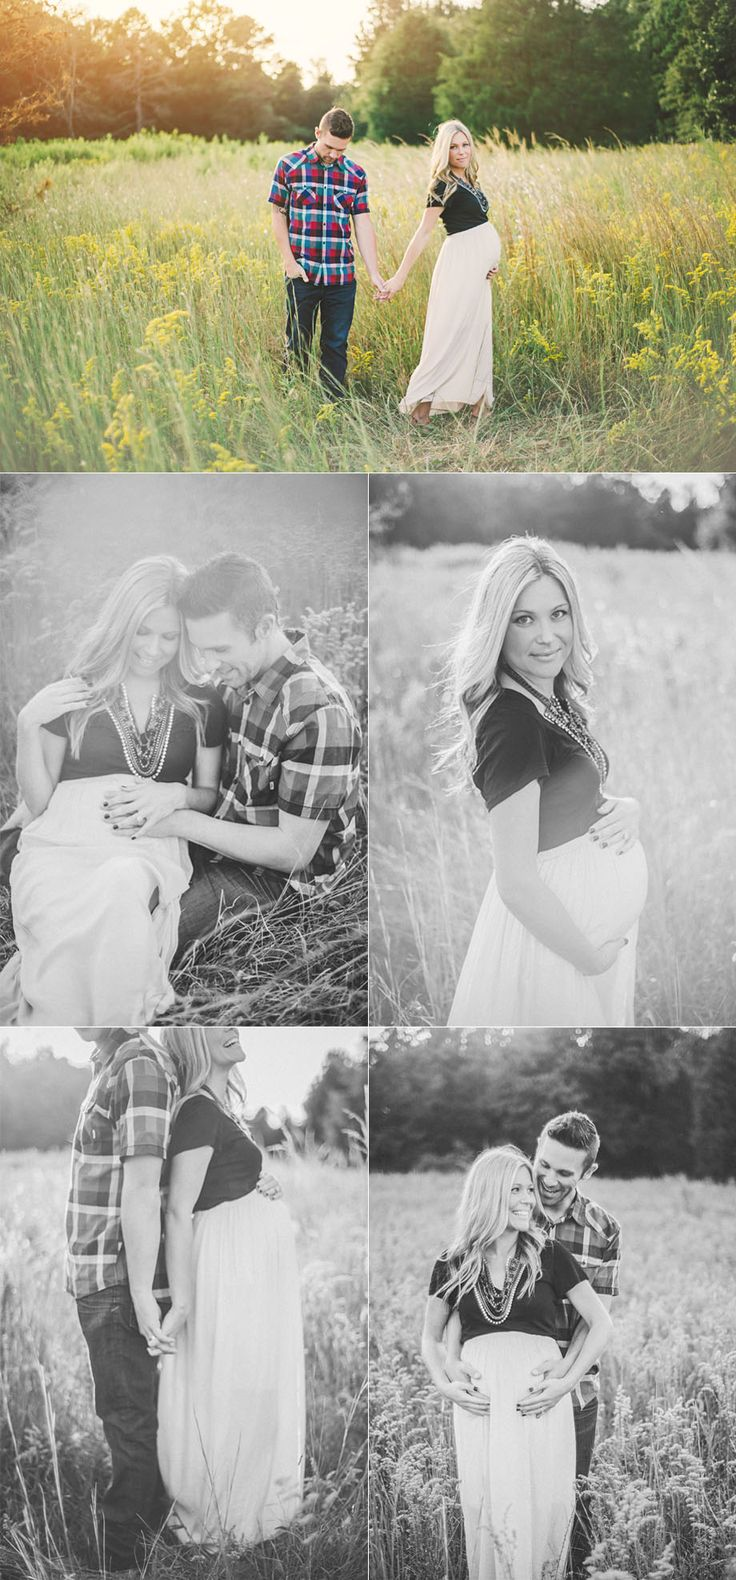 Super excited about our maternity photos! Krista and Jason– {Creative North Carolina Maternity Photography} #maternity #babybump #pregnancy